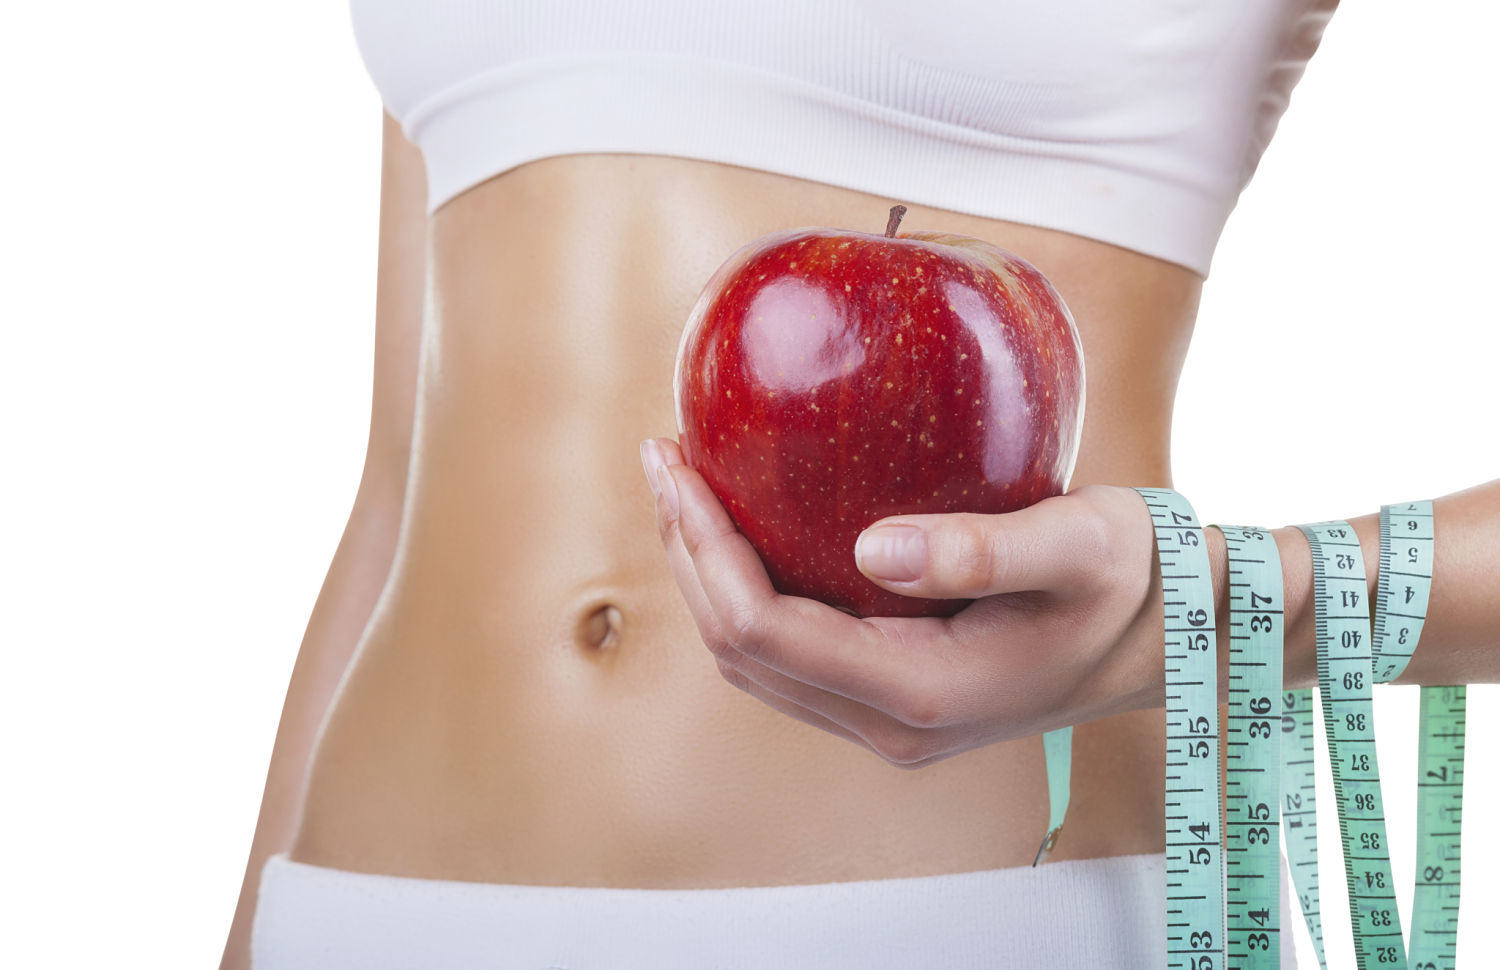 How To Stay on Track With Your New Years Weight Loss Resolutions